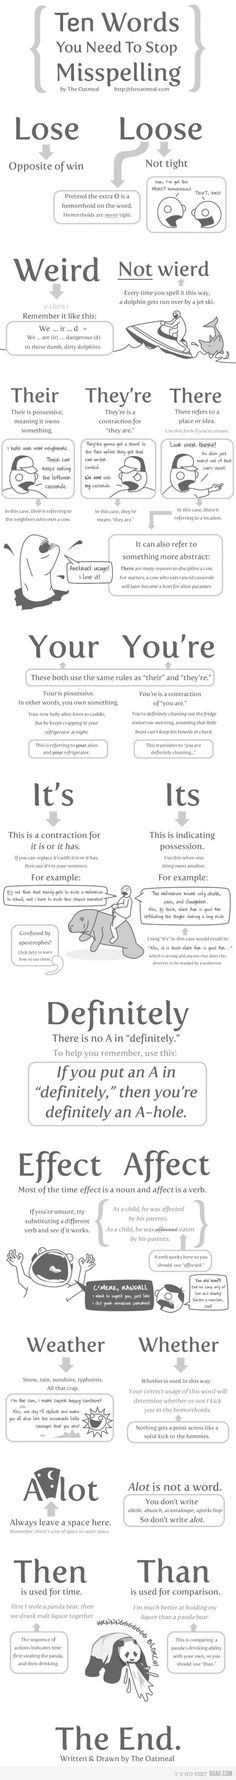 most of the misused words explained in a very funny way!